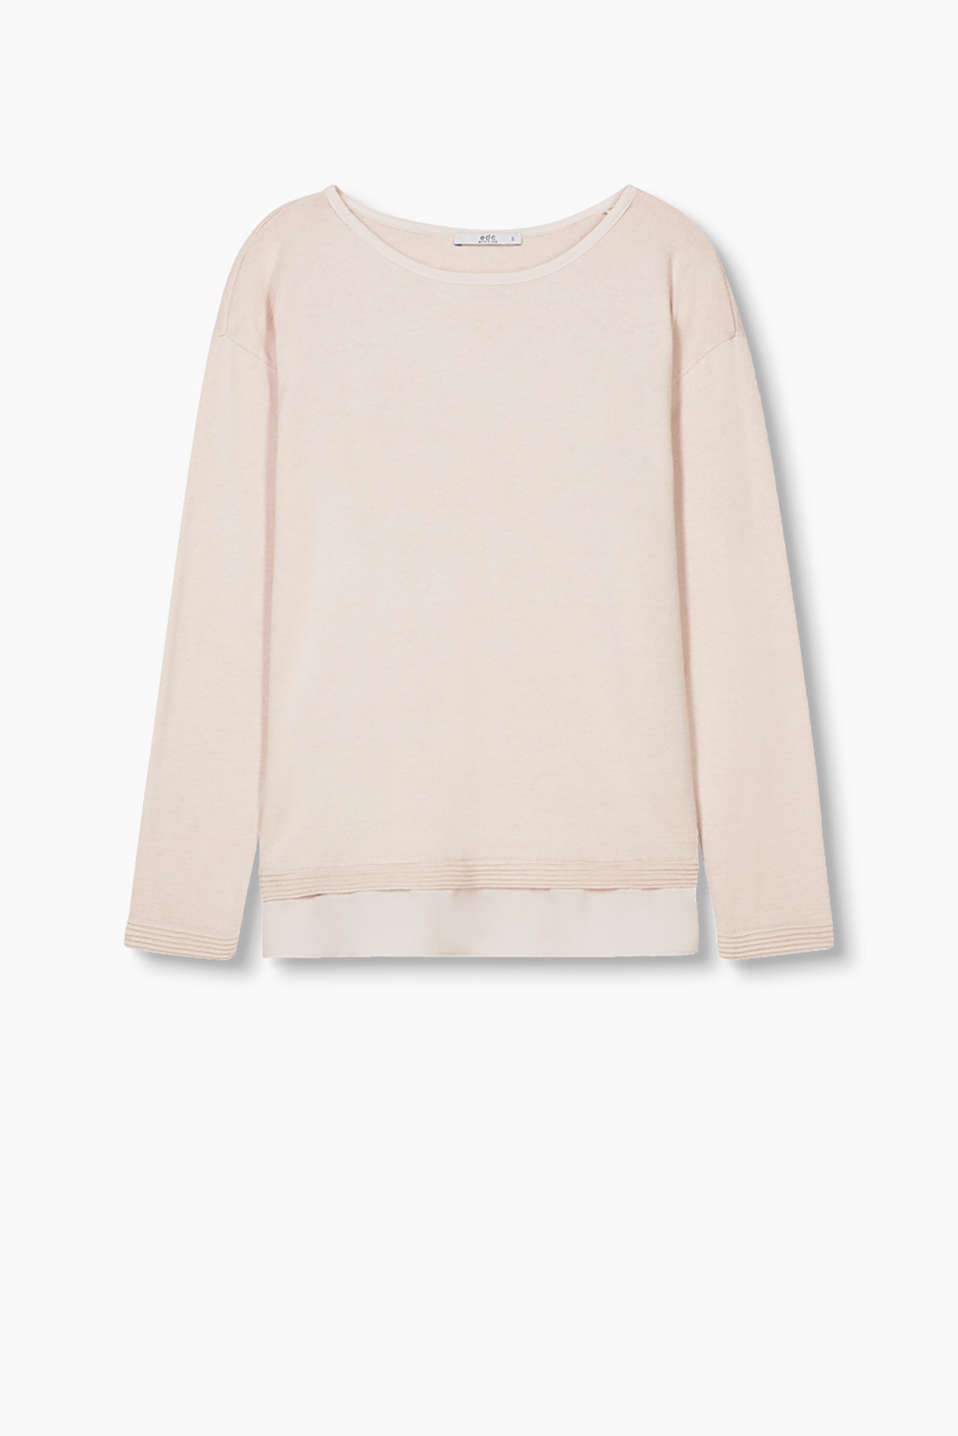 In a layered style: melange jumper with a fabric hem in crêpe